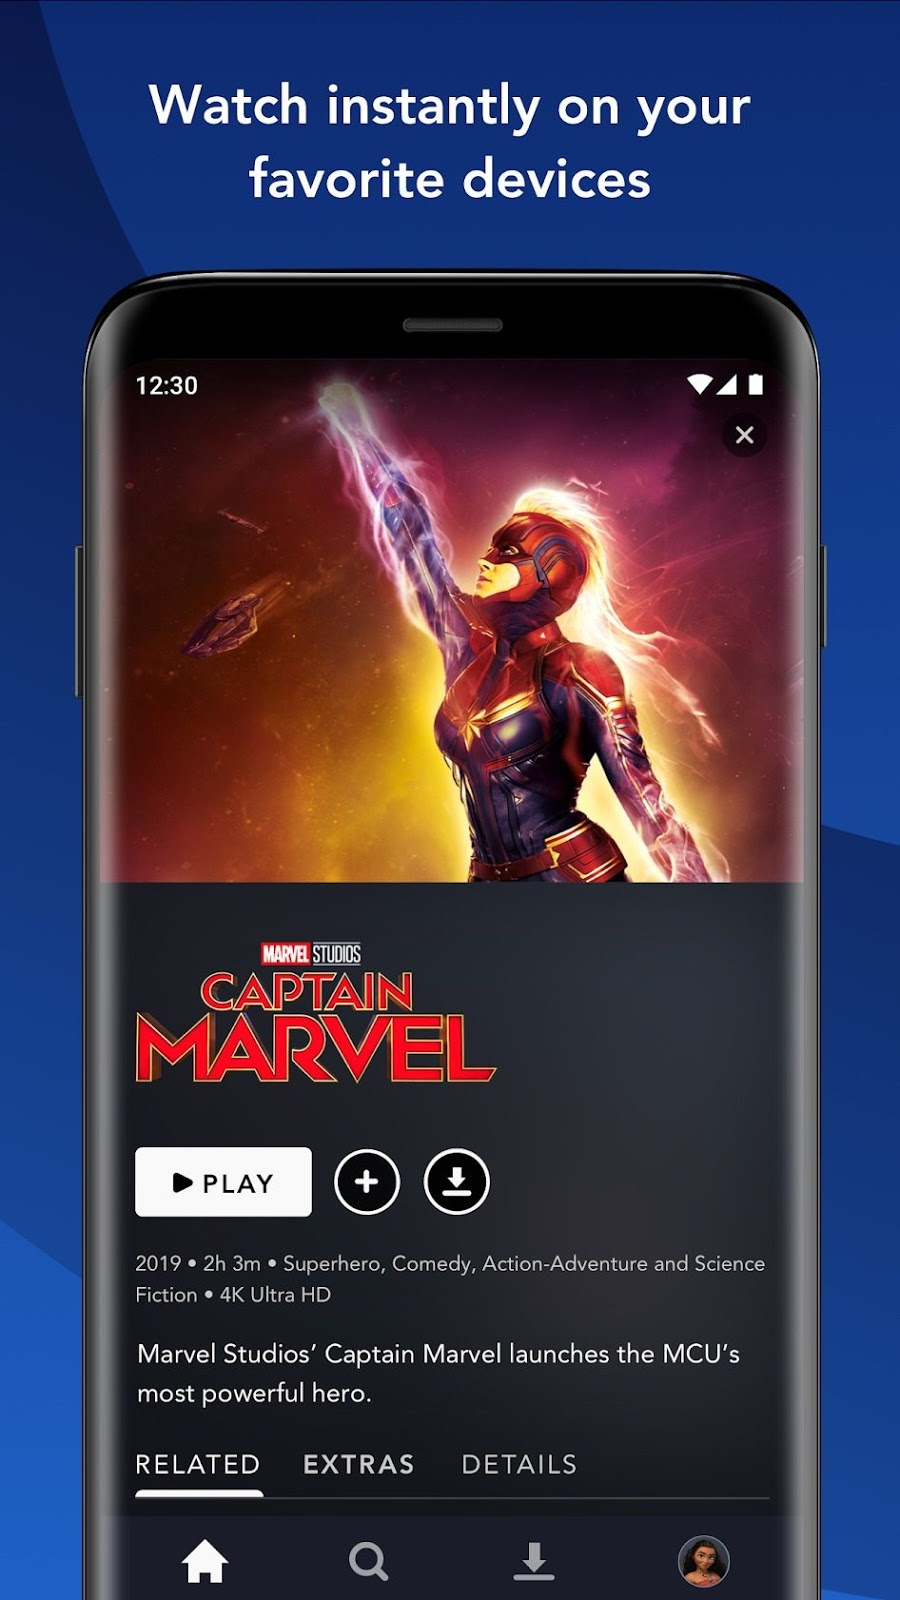 Disney+ app for Android and Android TV now available w/ Chromecast support